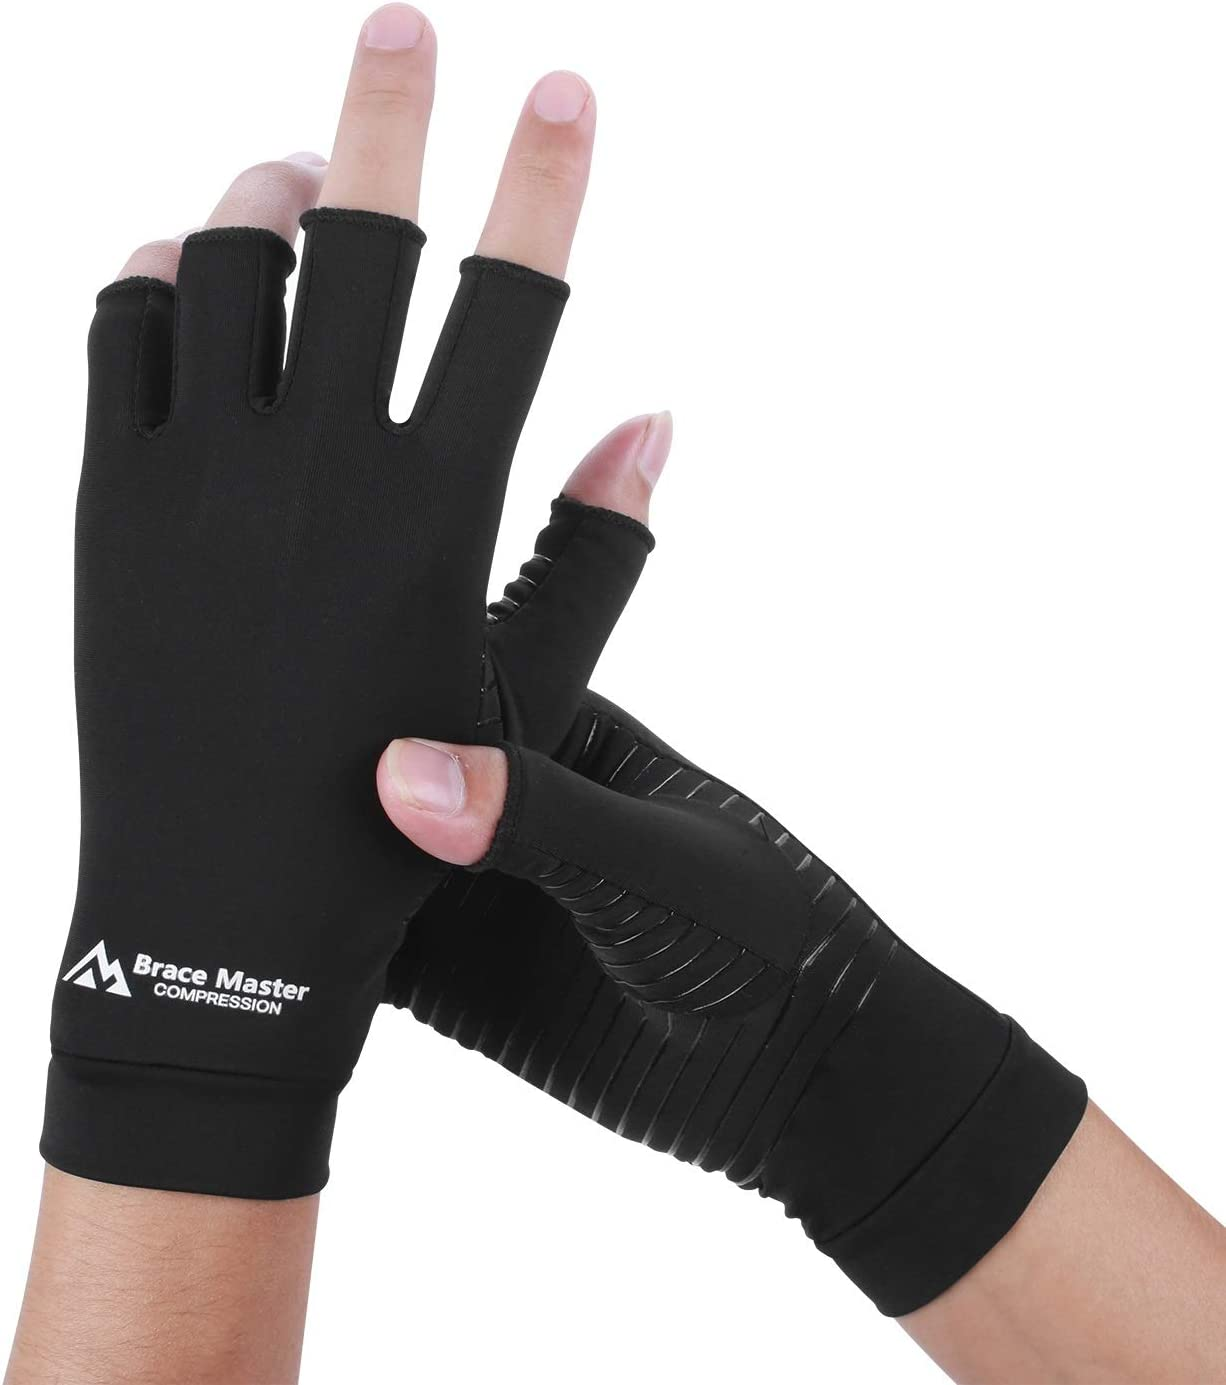 Large, Gray 1 Pair Relieve Pain from RSI Brace Master Compression Arthritis Gloves One Pair Full-Finger Support and Warmth for Hands Finger Joint Carpal Tunnel for Women and Men